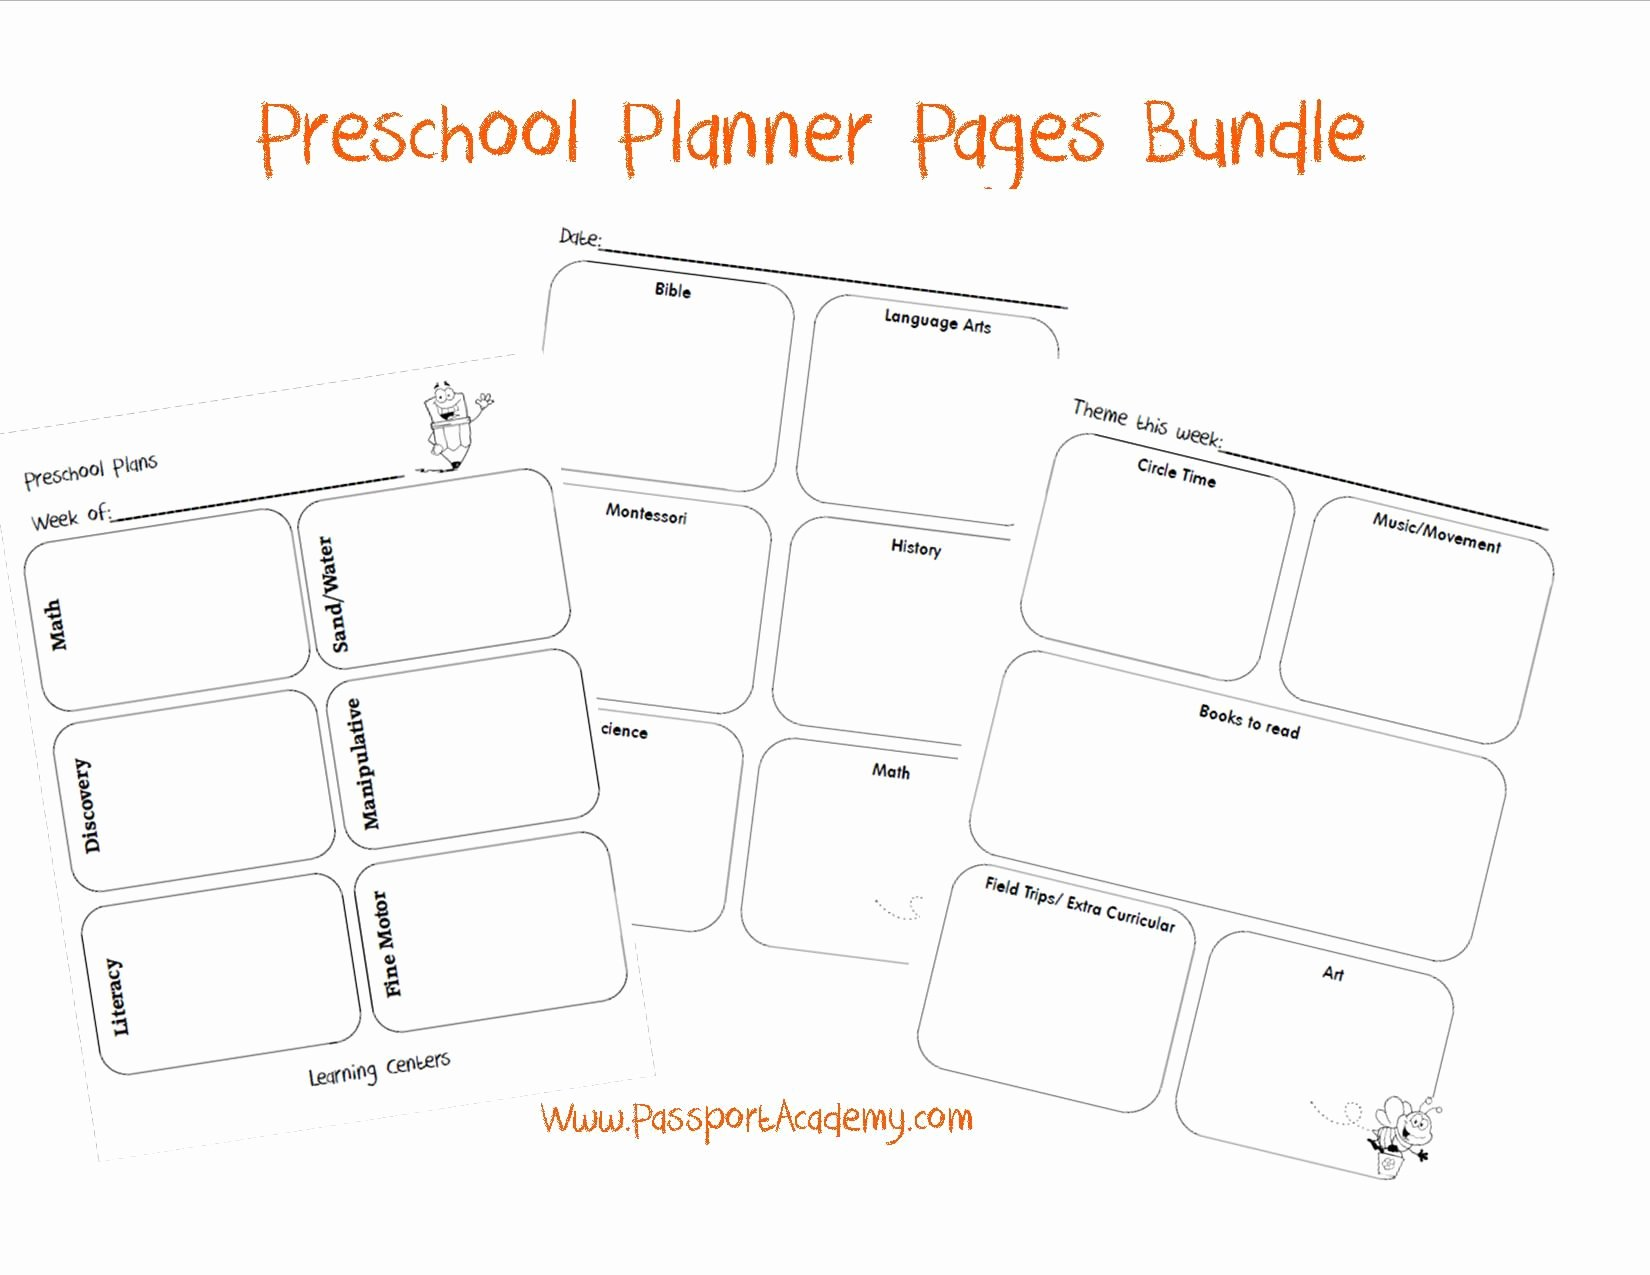 Preschool Daily Lesson Plan Template Unique Preschool Planner Bundle Free From Passport Academy